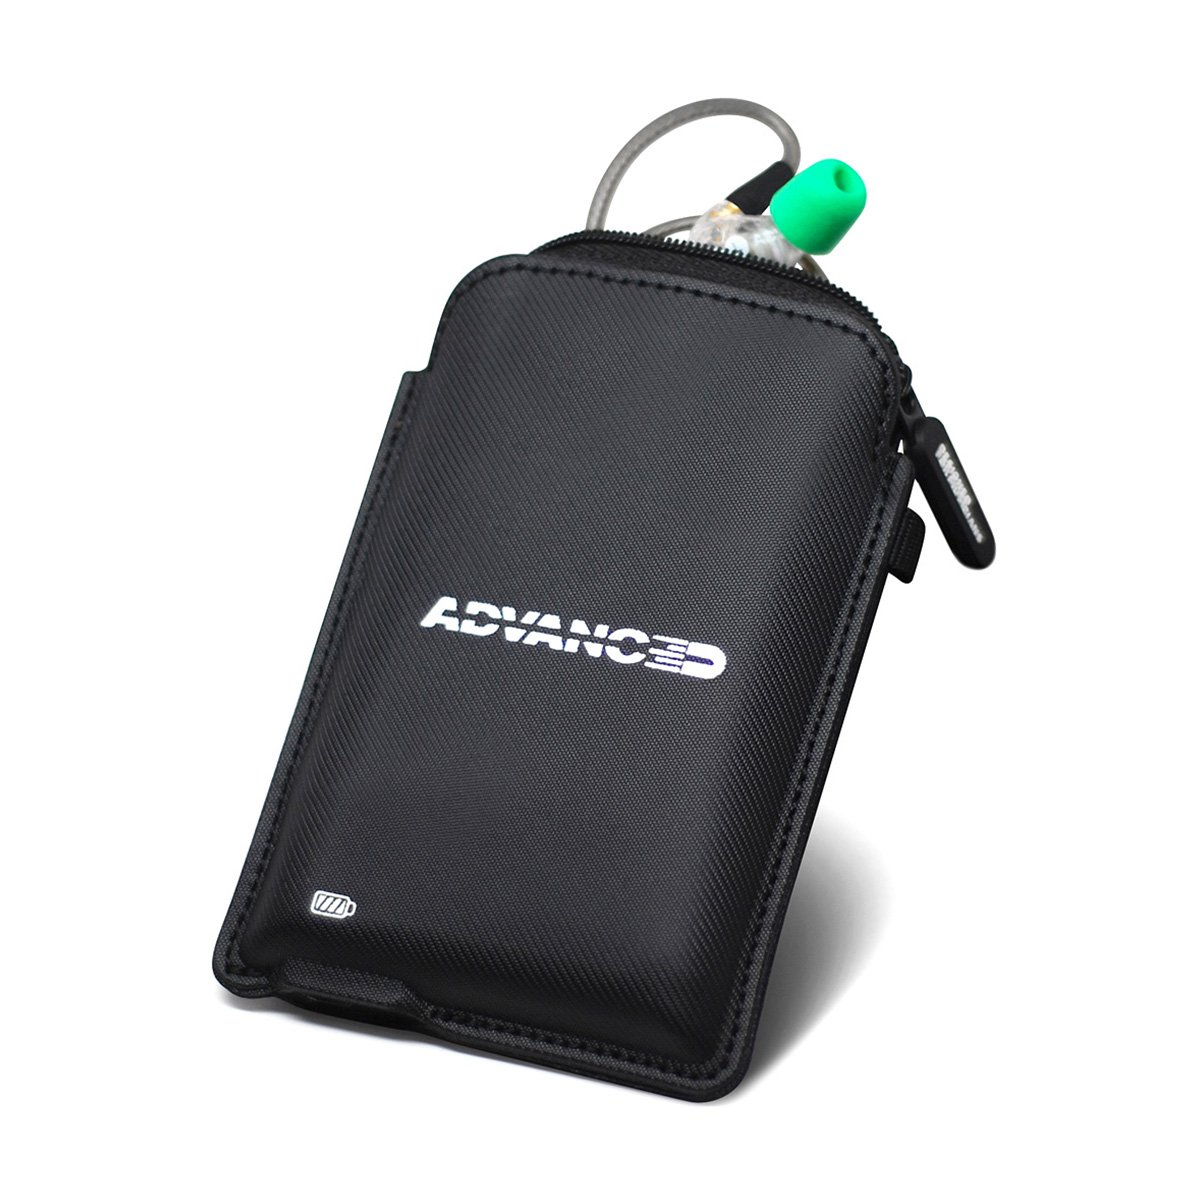 ADVANCED Power Pouch Carrying Case for BT Earphones 800mAh Power Bank MicroUSB Charger for Wireless Earbuds Ideal for Travel Advanced Sound ADVPWRP-BLK